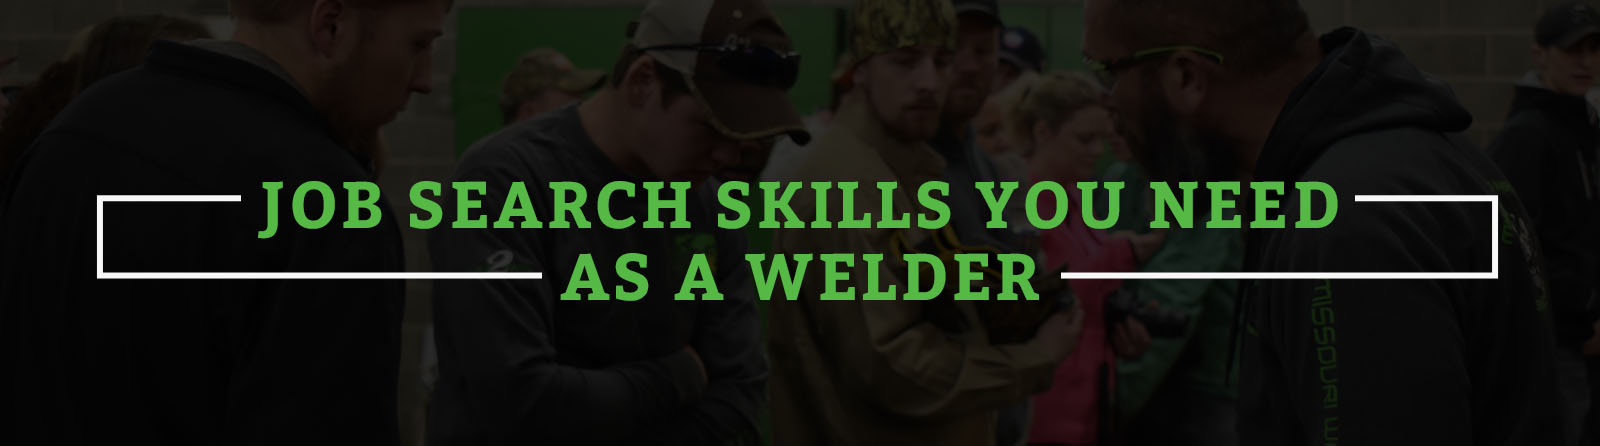 JOB SEARCH SKILLS YOU NEED AS A WELDER